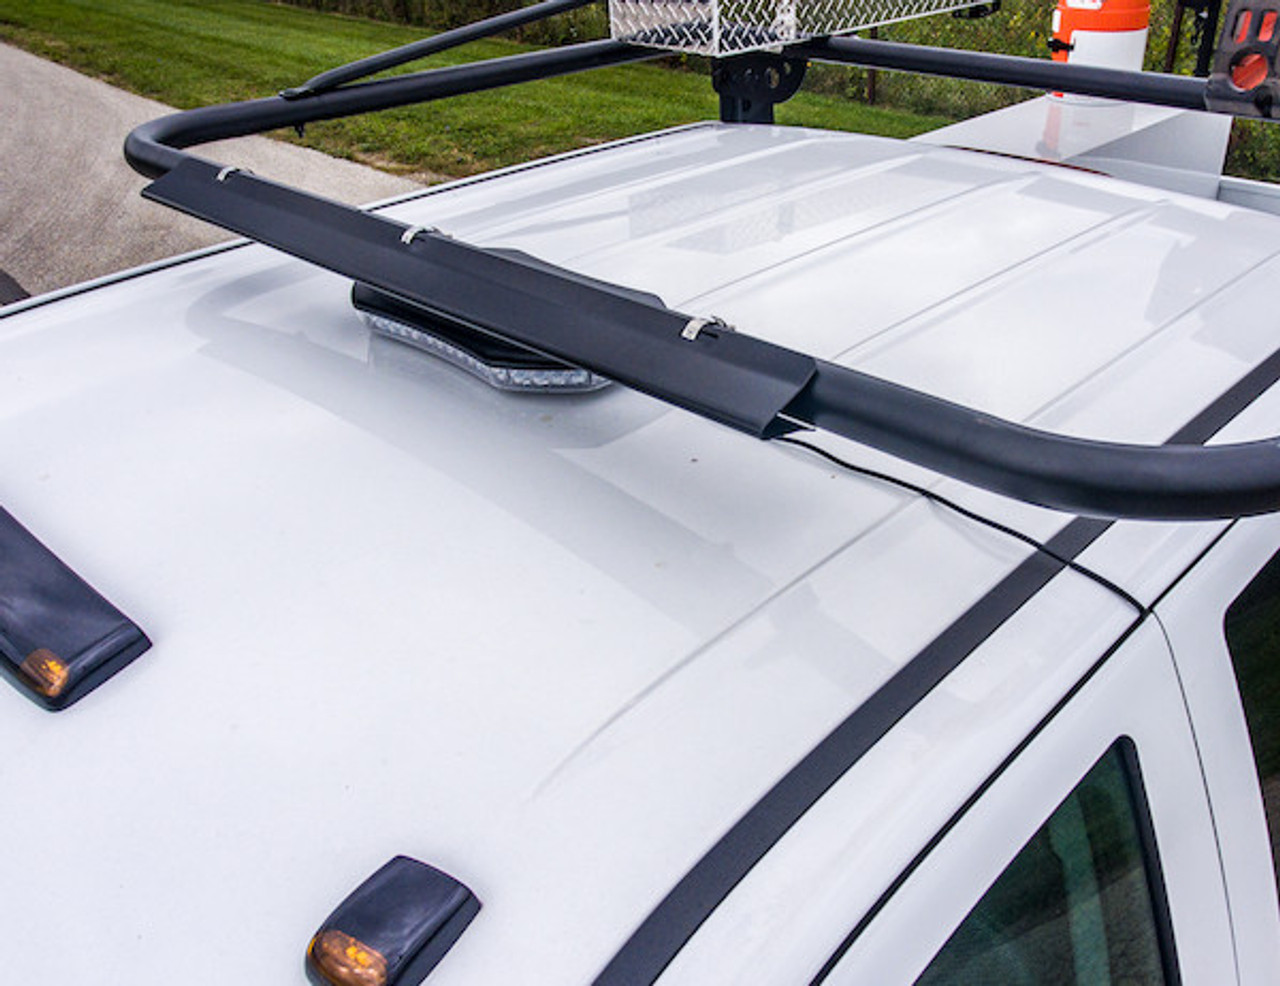 Buyers 1501193 Ladder Rack Wind Deflector Kit for Painters, Electricians, Contractors Picture # 5